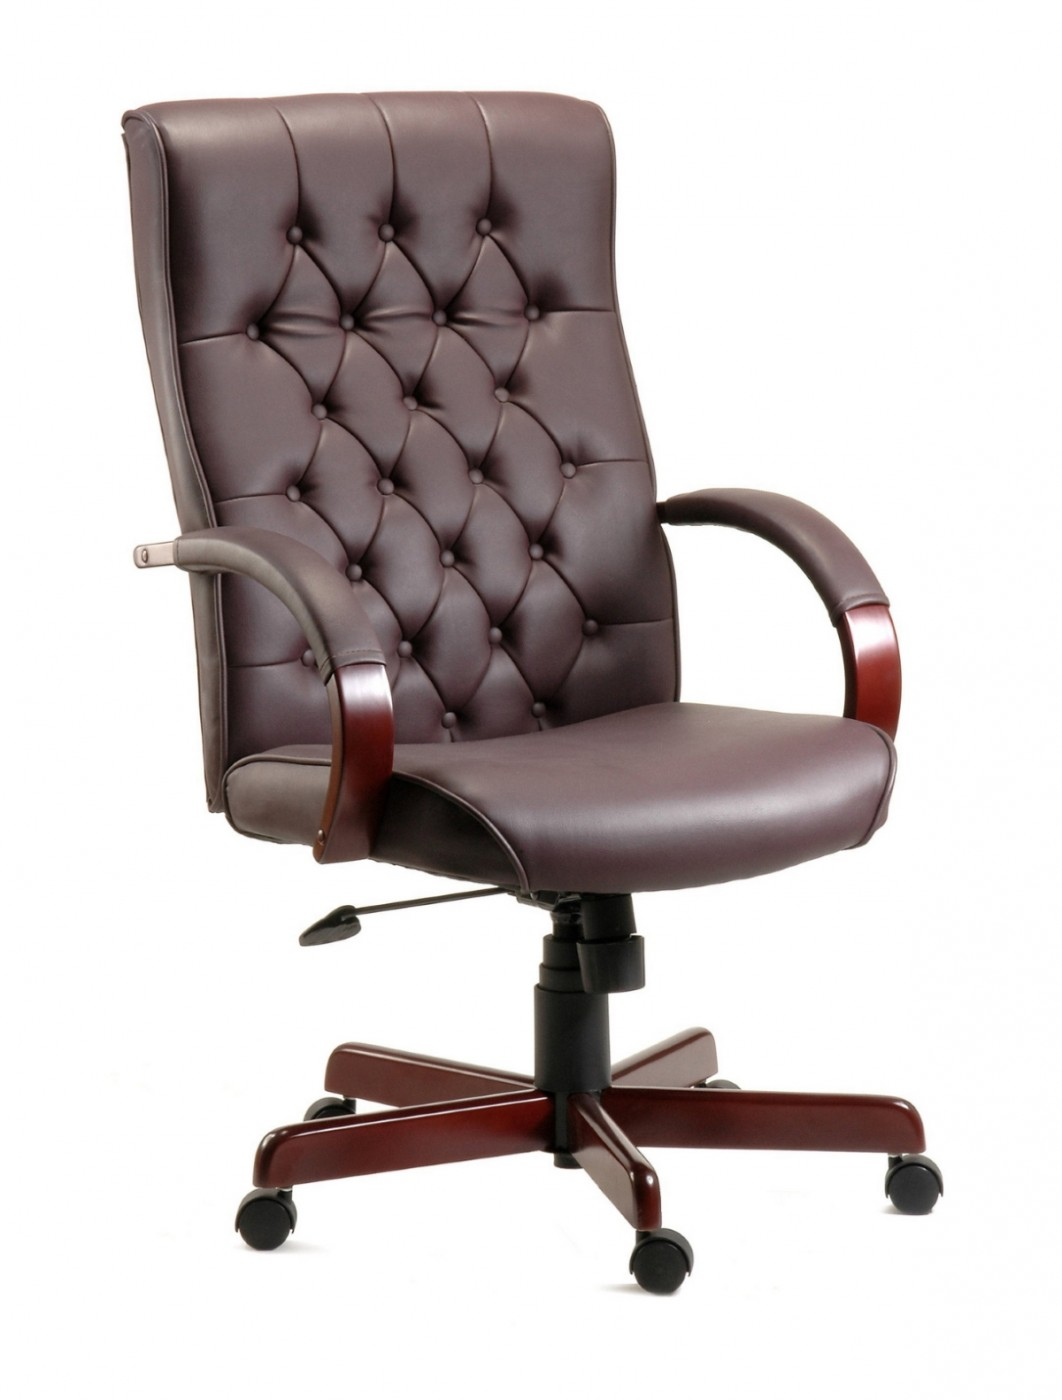 leather chair office black friday bean bag chairs warwick traditional exec